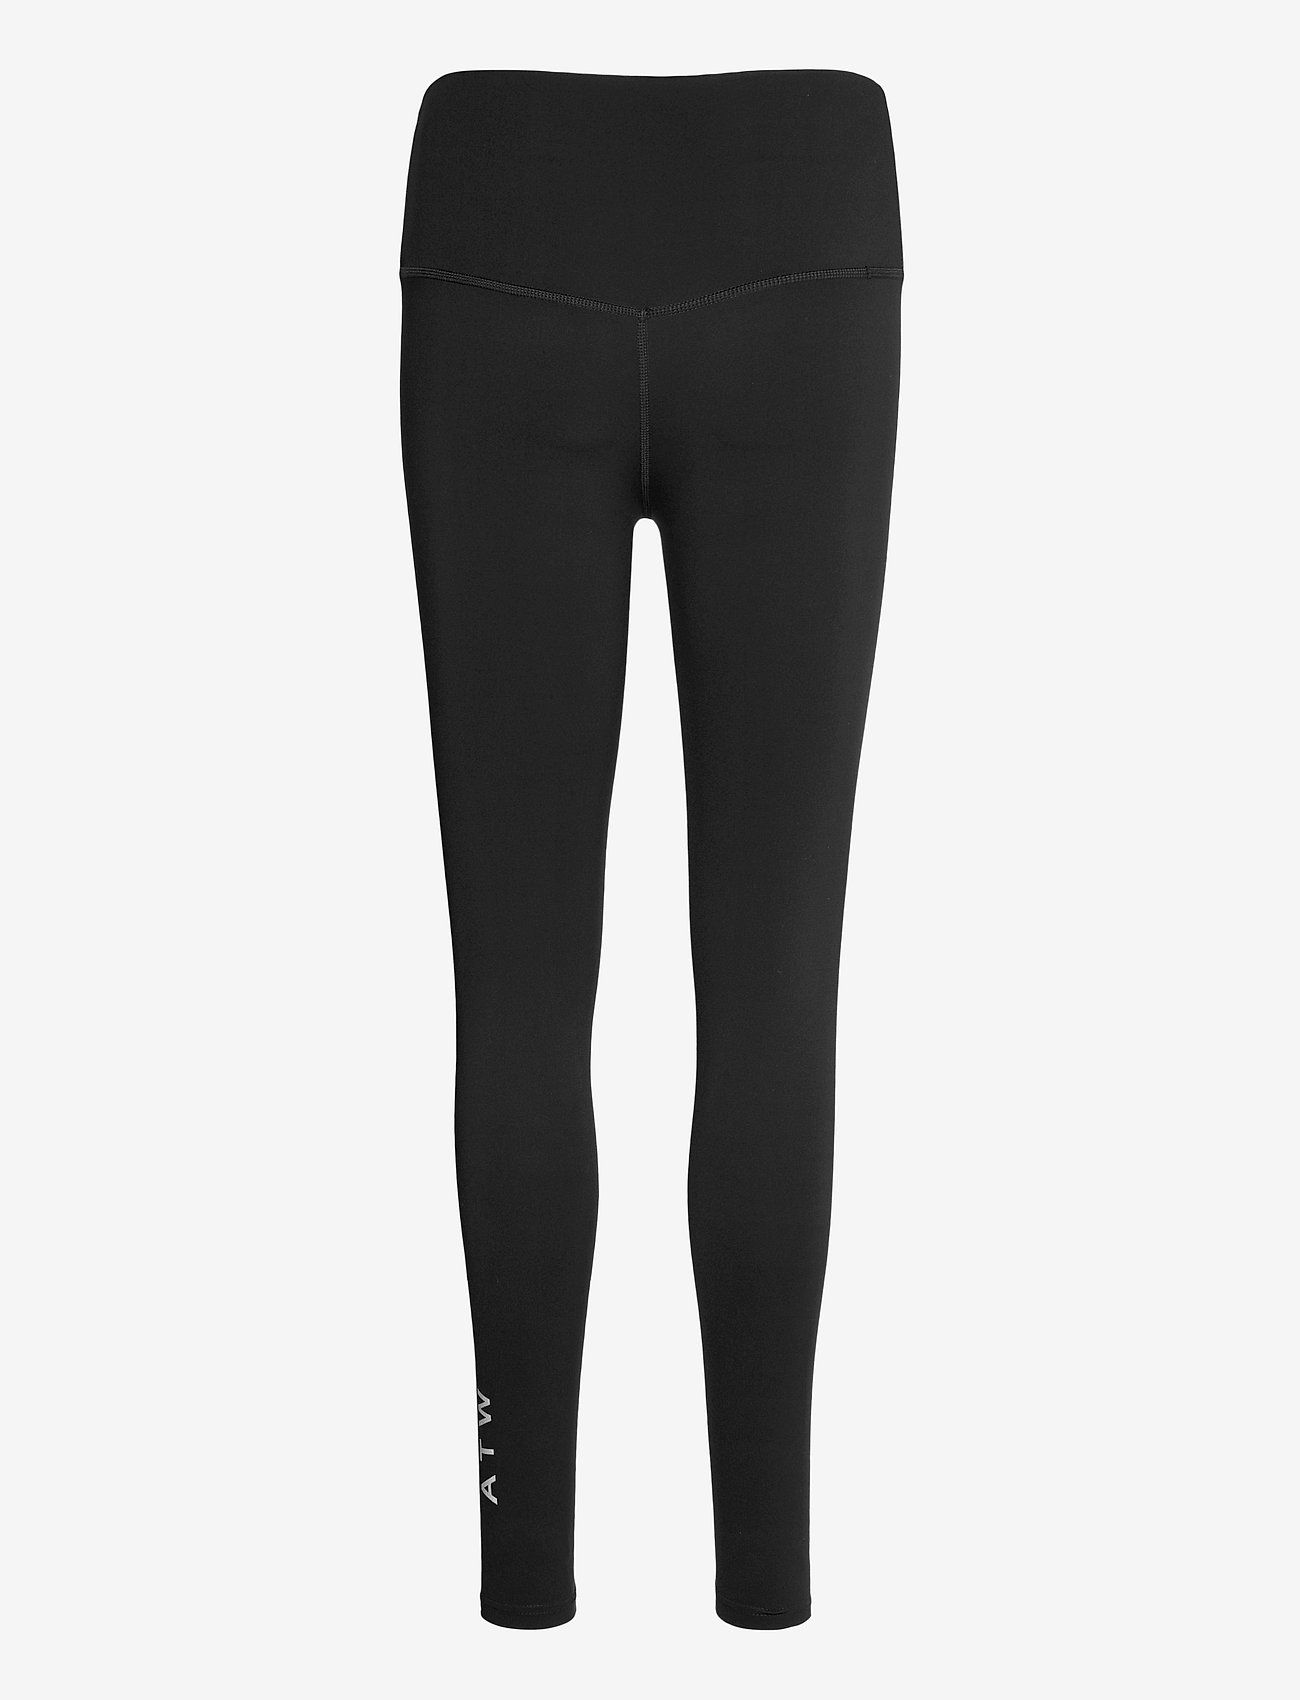 HALO - HALO WOMENS HIGHRISE TIGHTS - running & training tights - black - 1